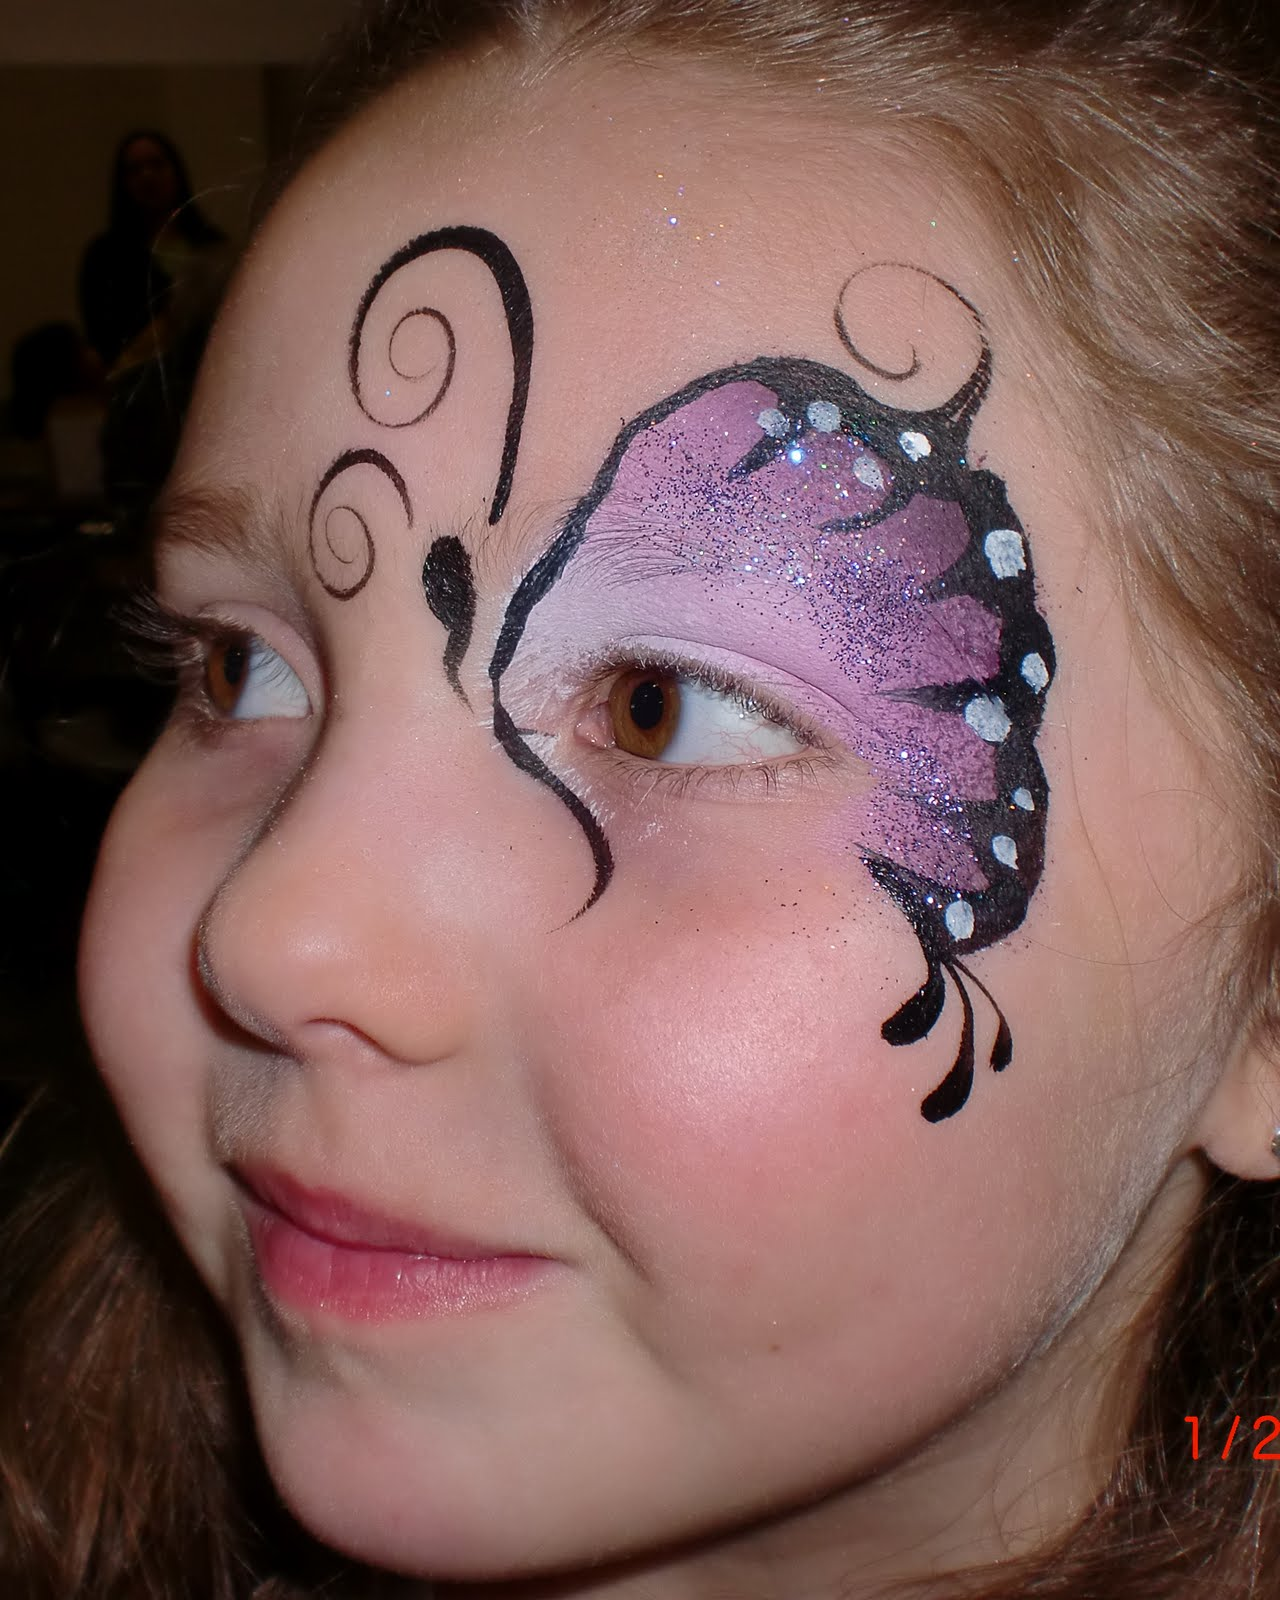 Face Paint The Story Of Makeup Amazon Co Uk Lisa: Face Painting Illusions And Balloon Art, LLC: Winter